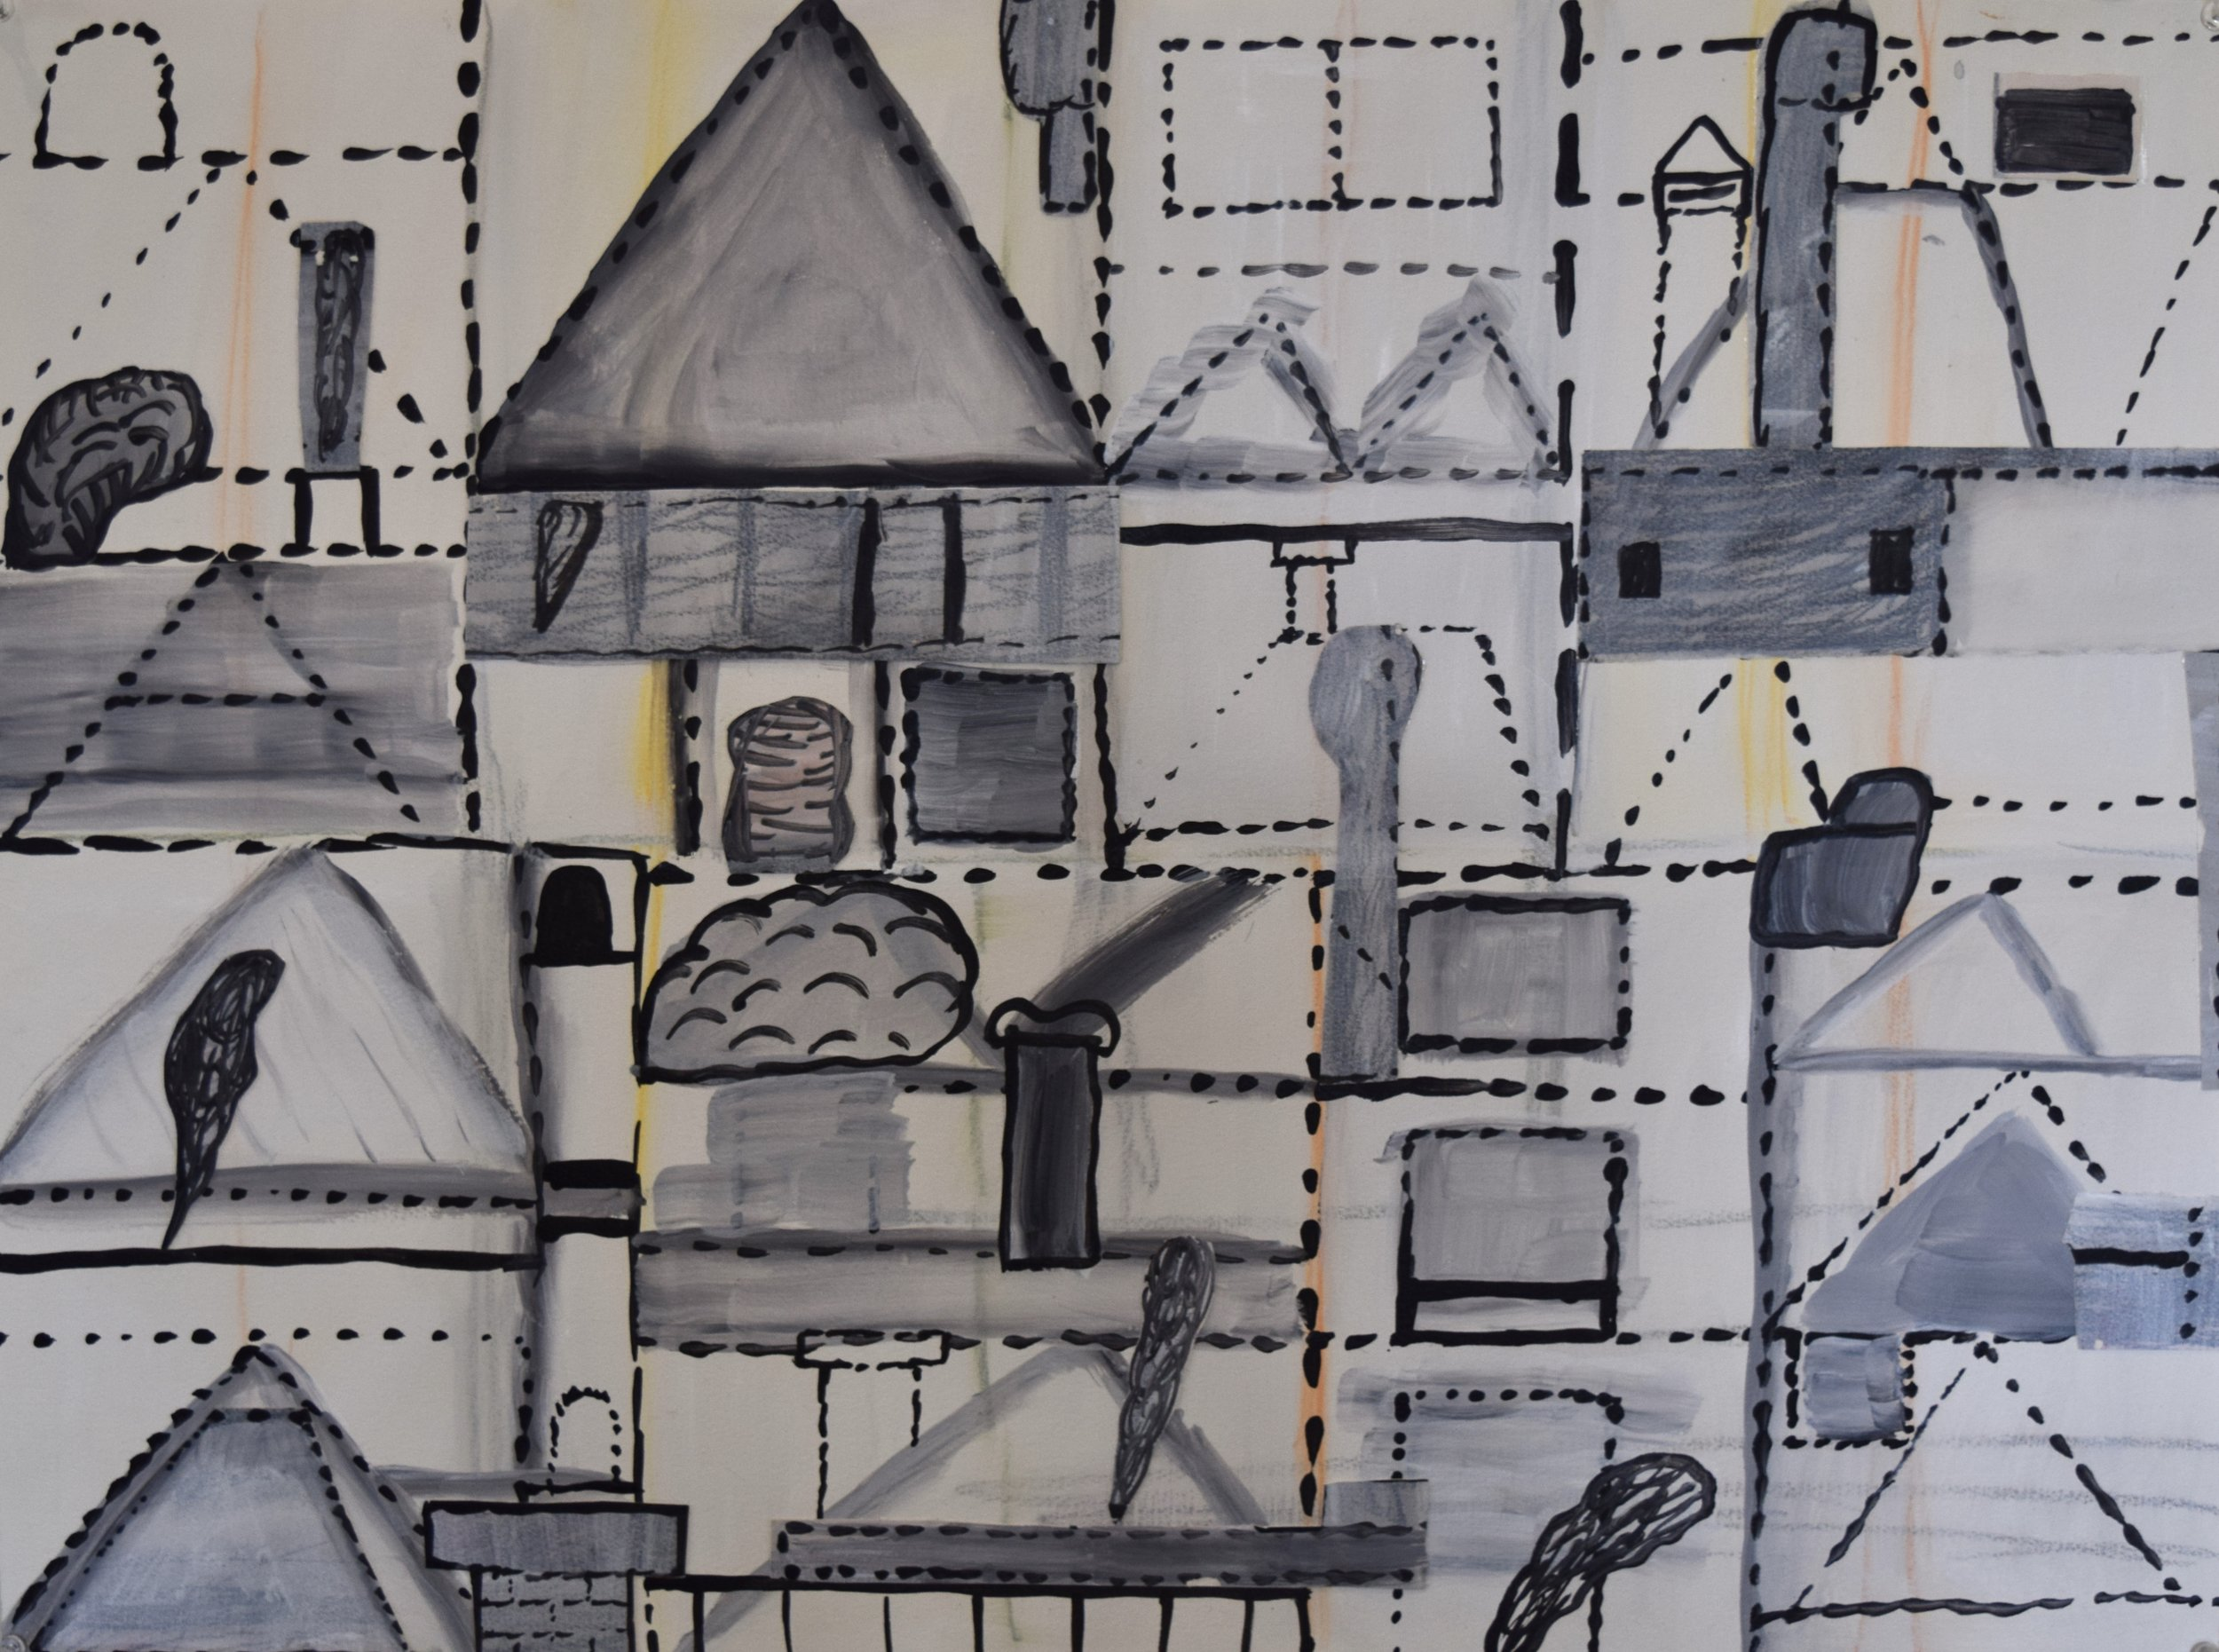 Roof tops , Andrew Powell, paper collage, acrylic paint on paper, 2013-2014